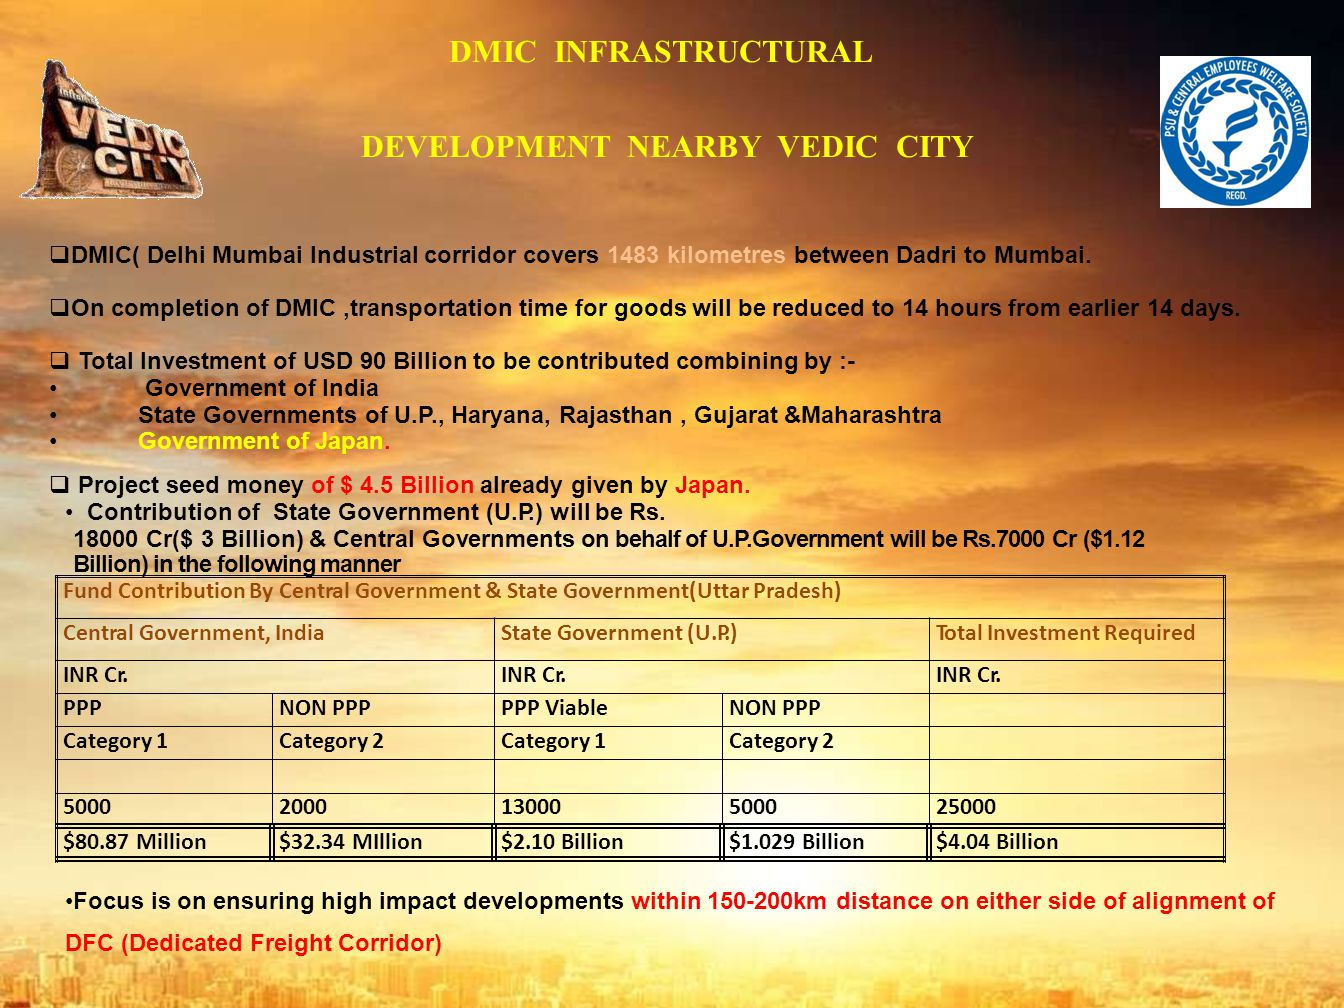 IMPORTANCE OF THE LOCATION IN TERMS OF DEVELOPMENT OF DMIC & EASTERN PERIPHERAL EXPRESSWAY